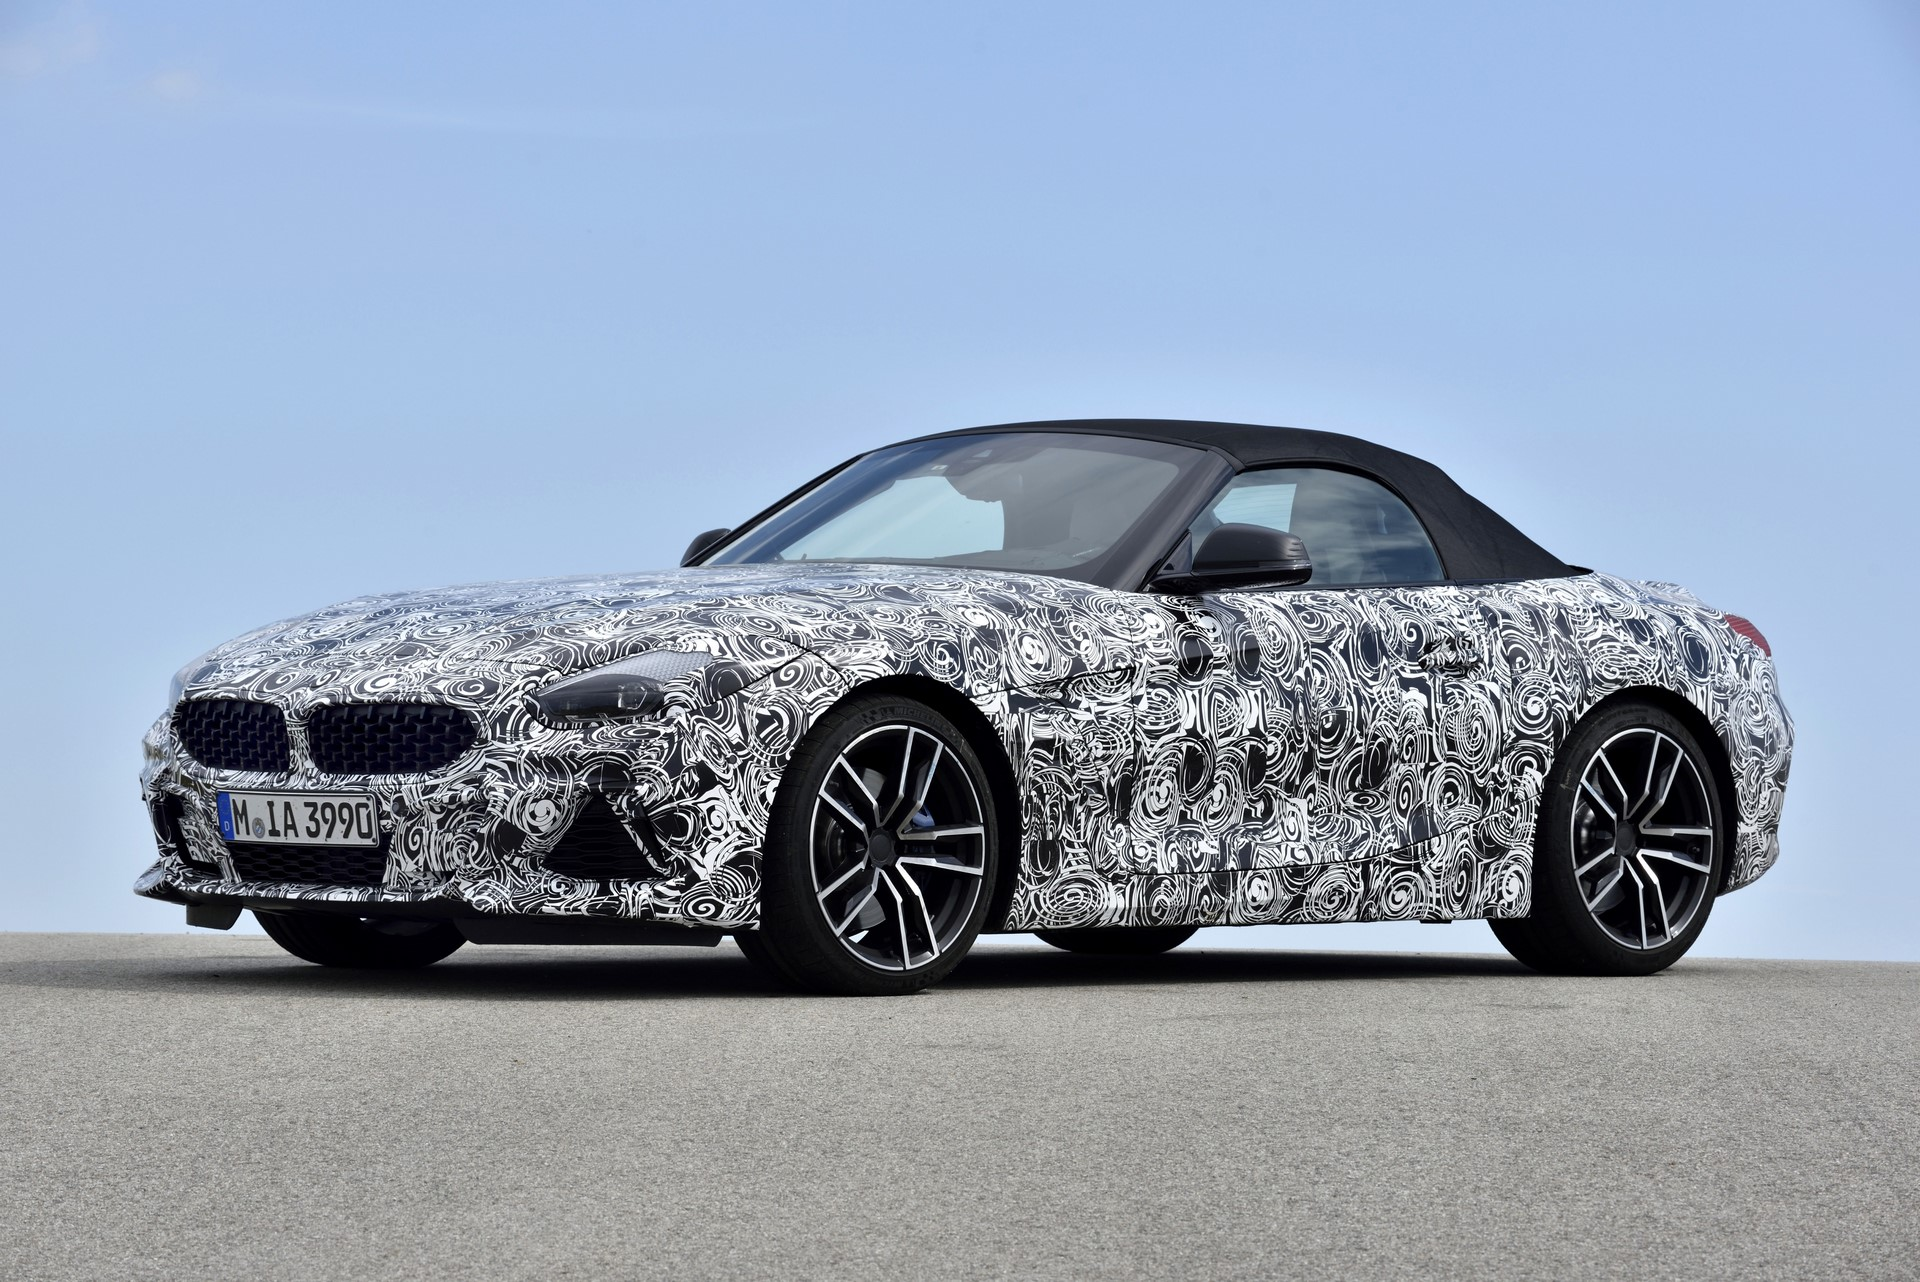 BMW Z4 M40i 2019 official spy photos (40)